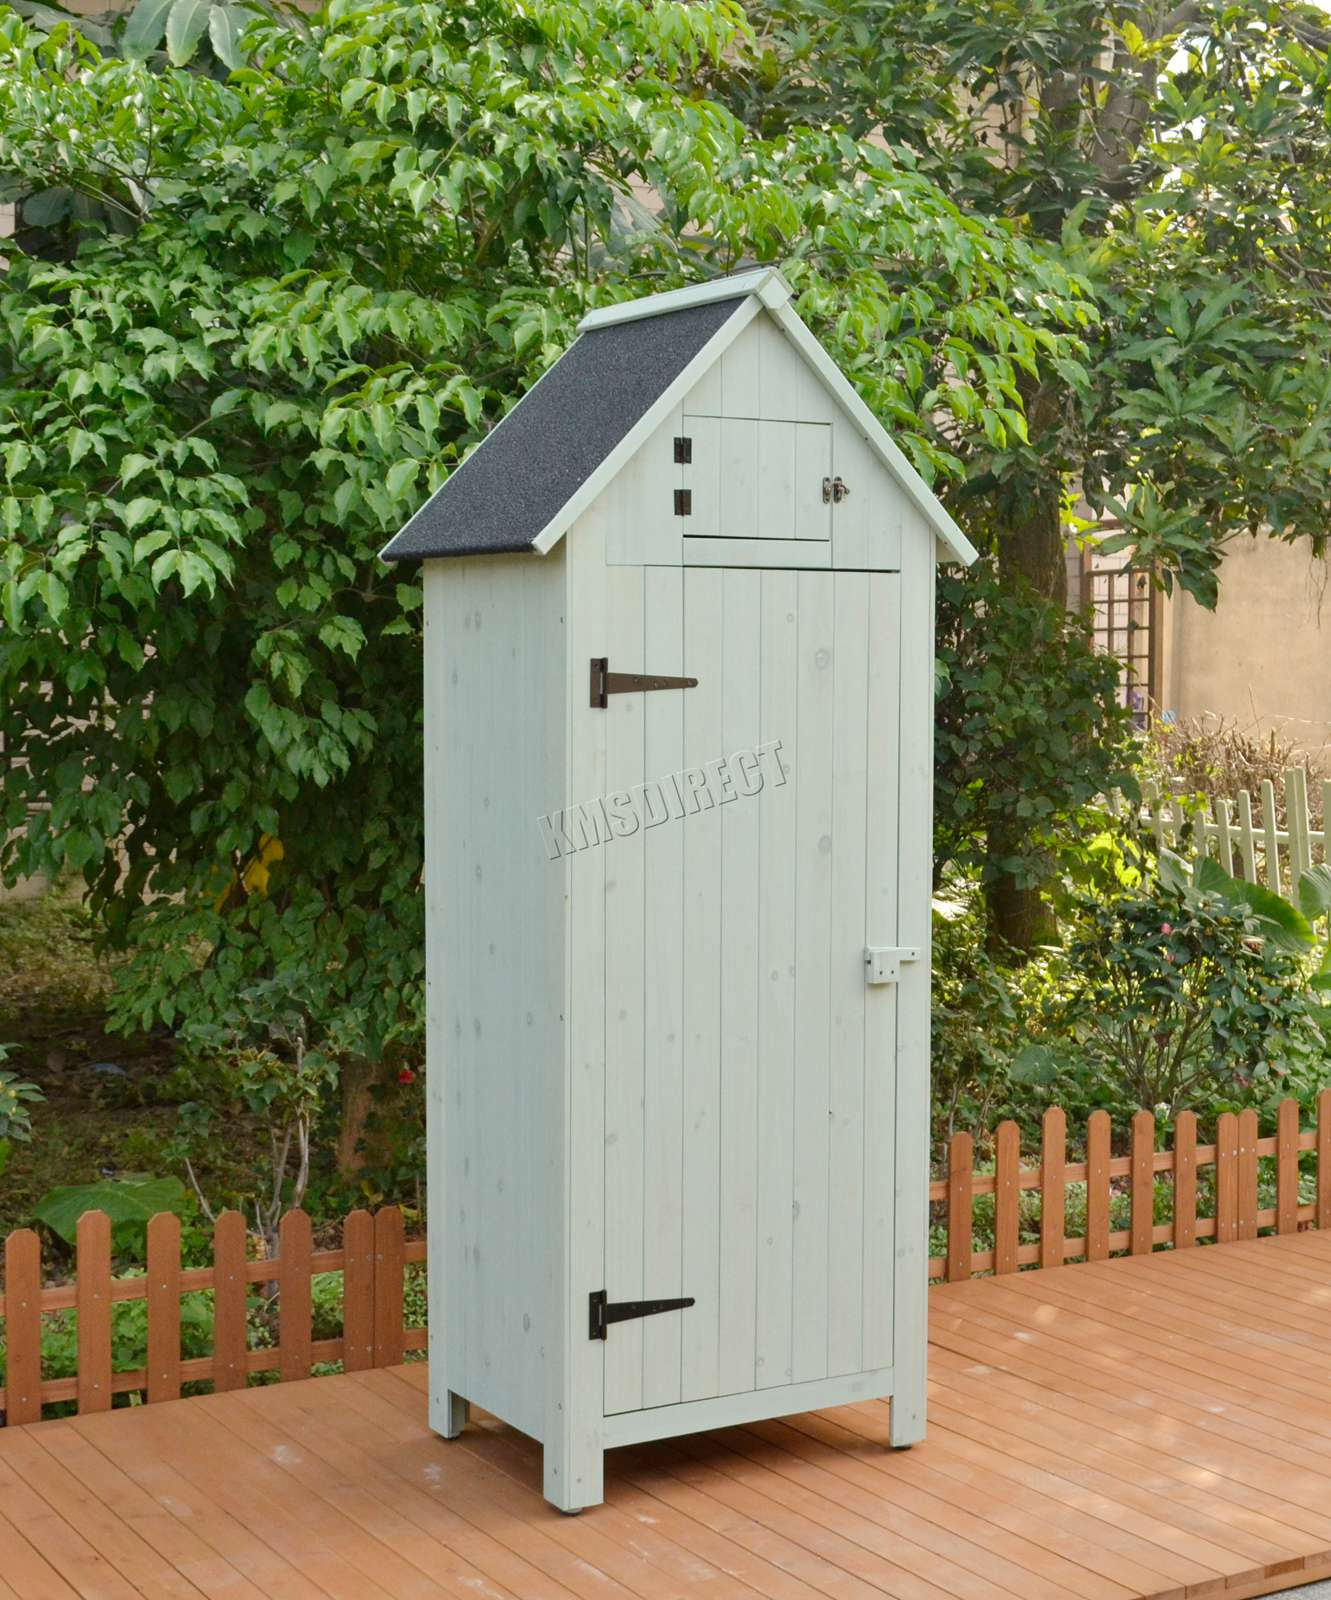 Westwood Wooden Sentry Box Beach Hut Shed Storage Outdoor